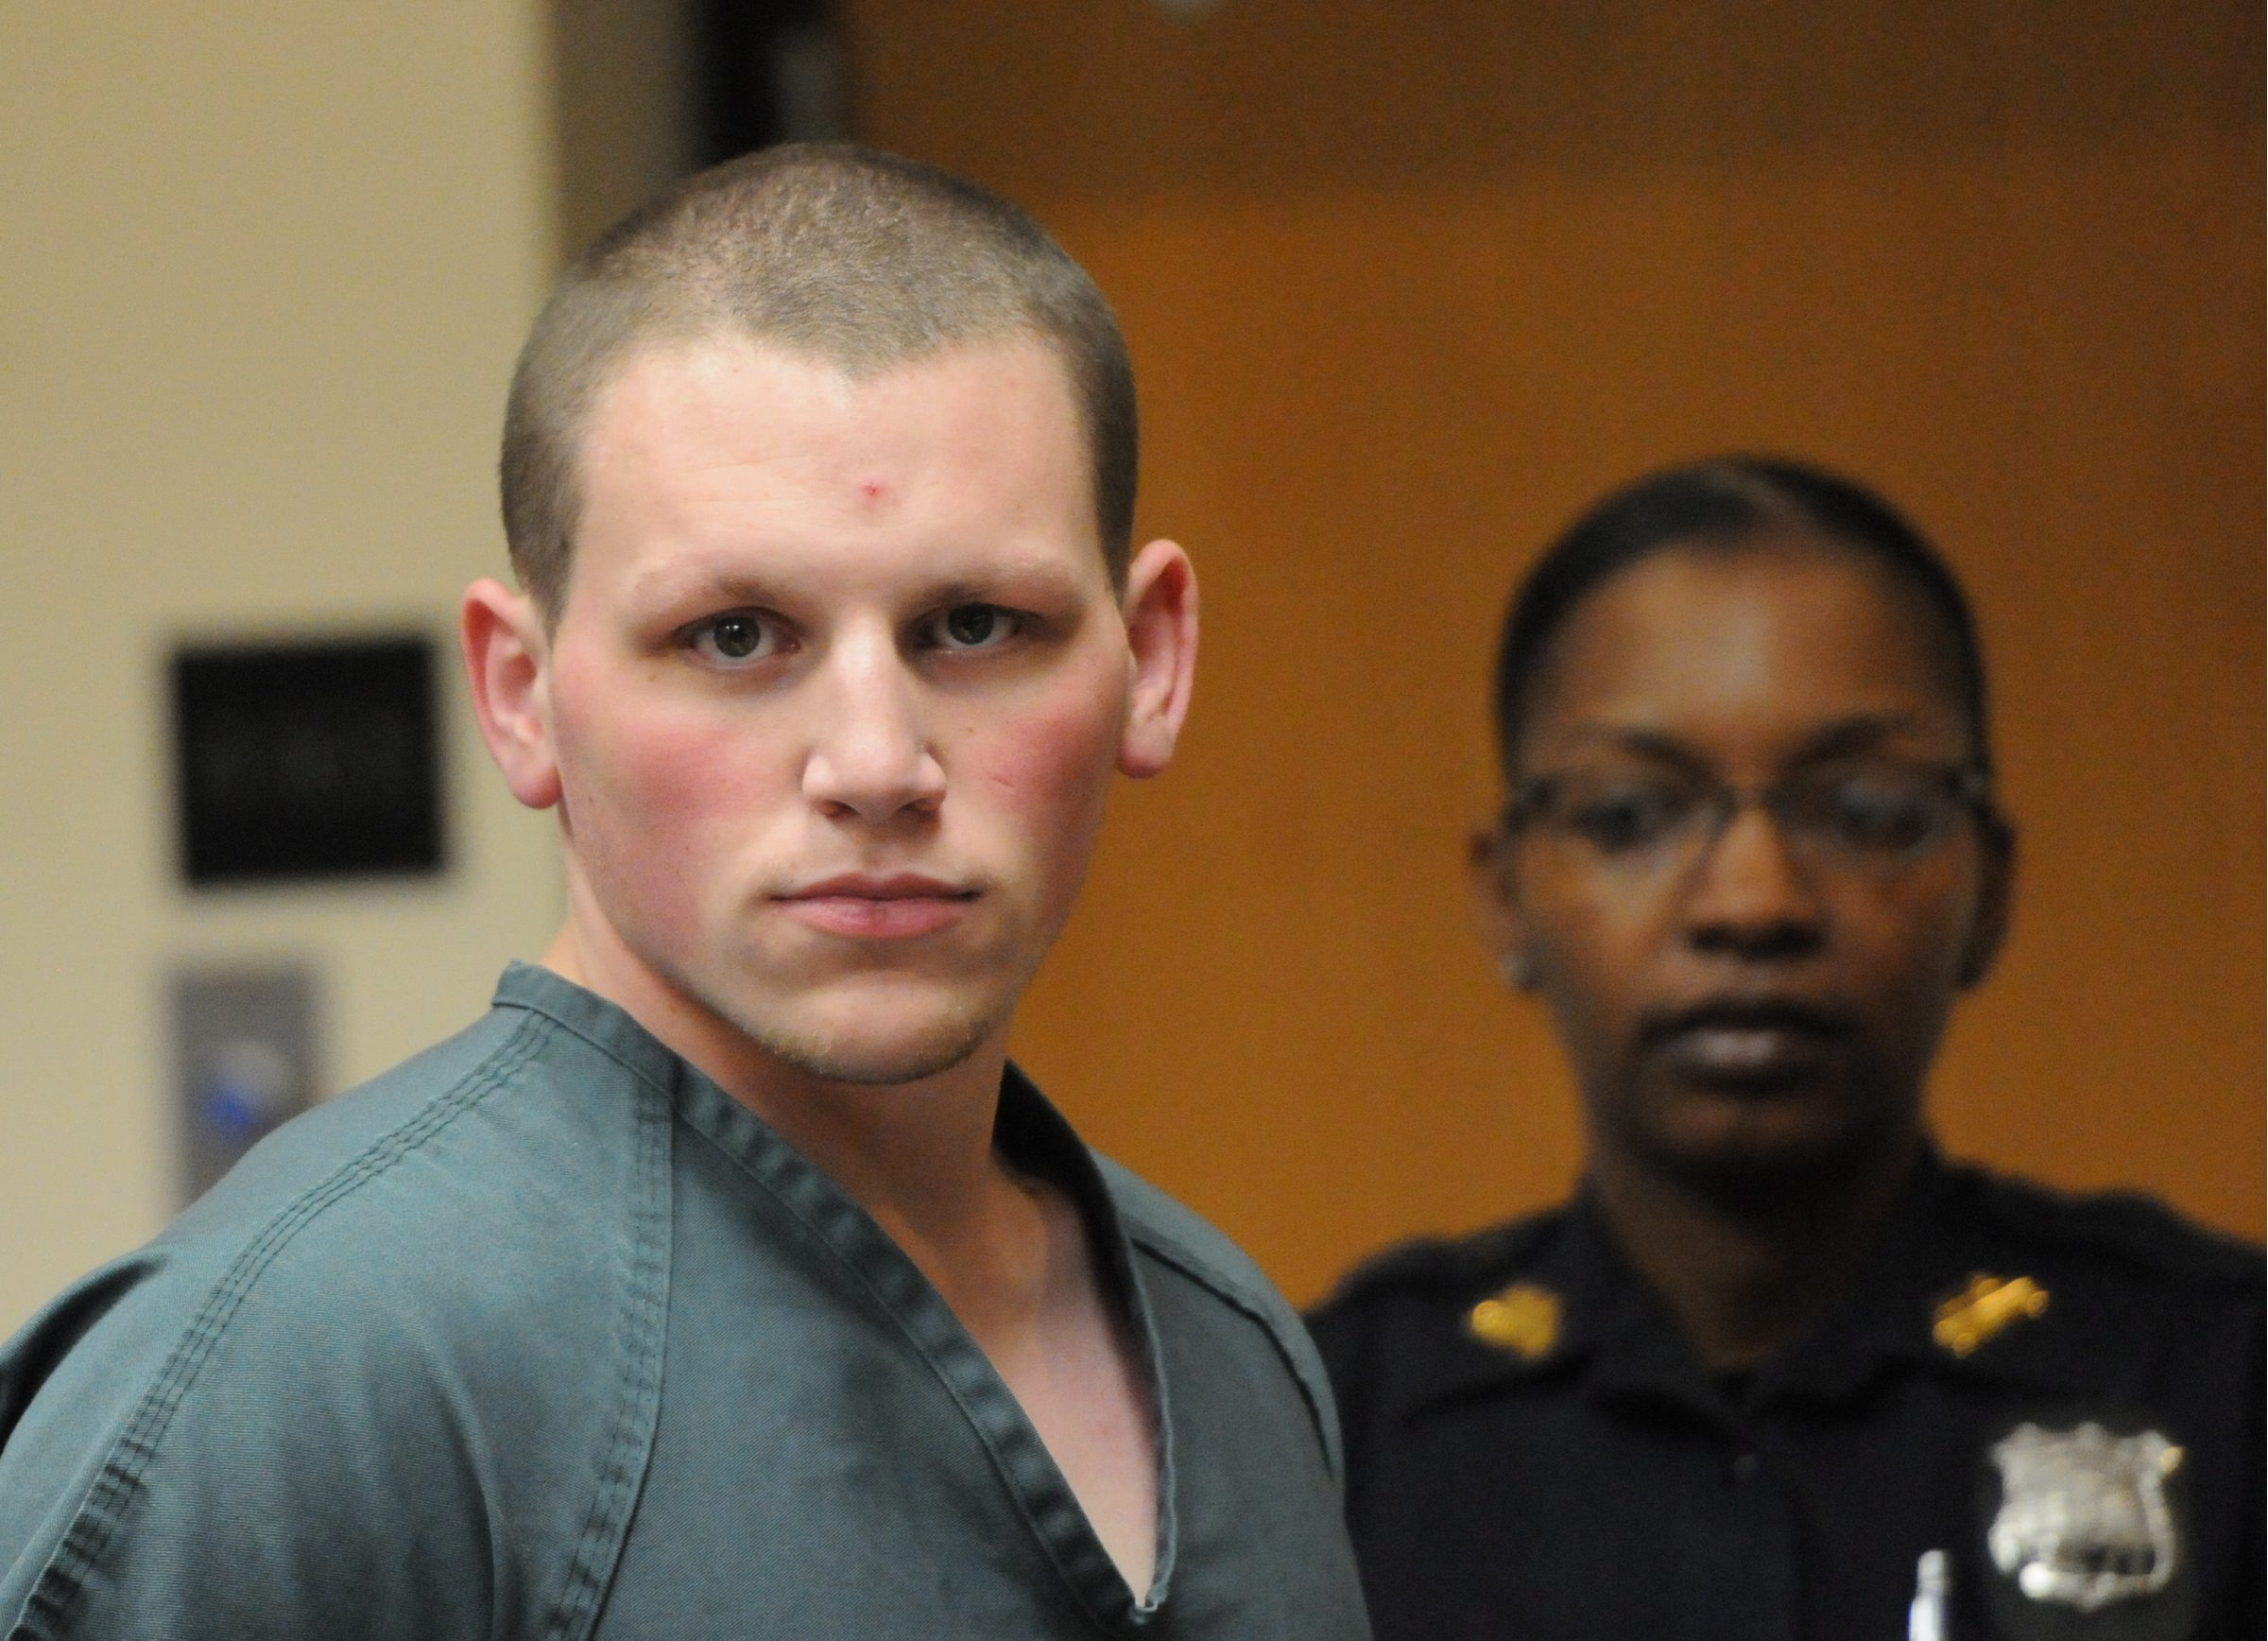 Adam Saalfield of Huntington Station maintains that he did not kill Maggie Rosales. (Photo/POOL/Newsday/James Carbone)